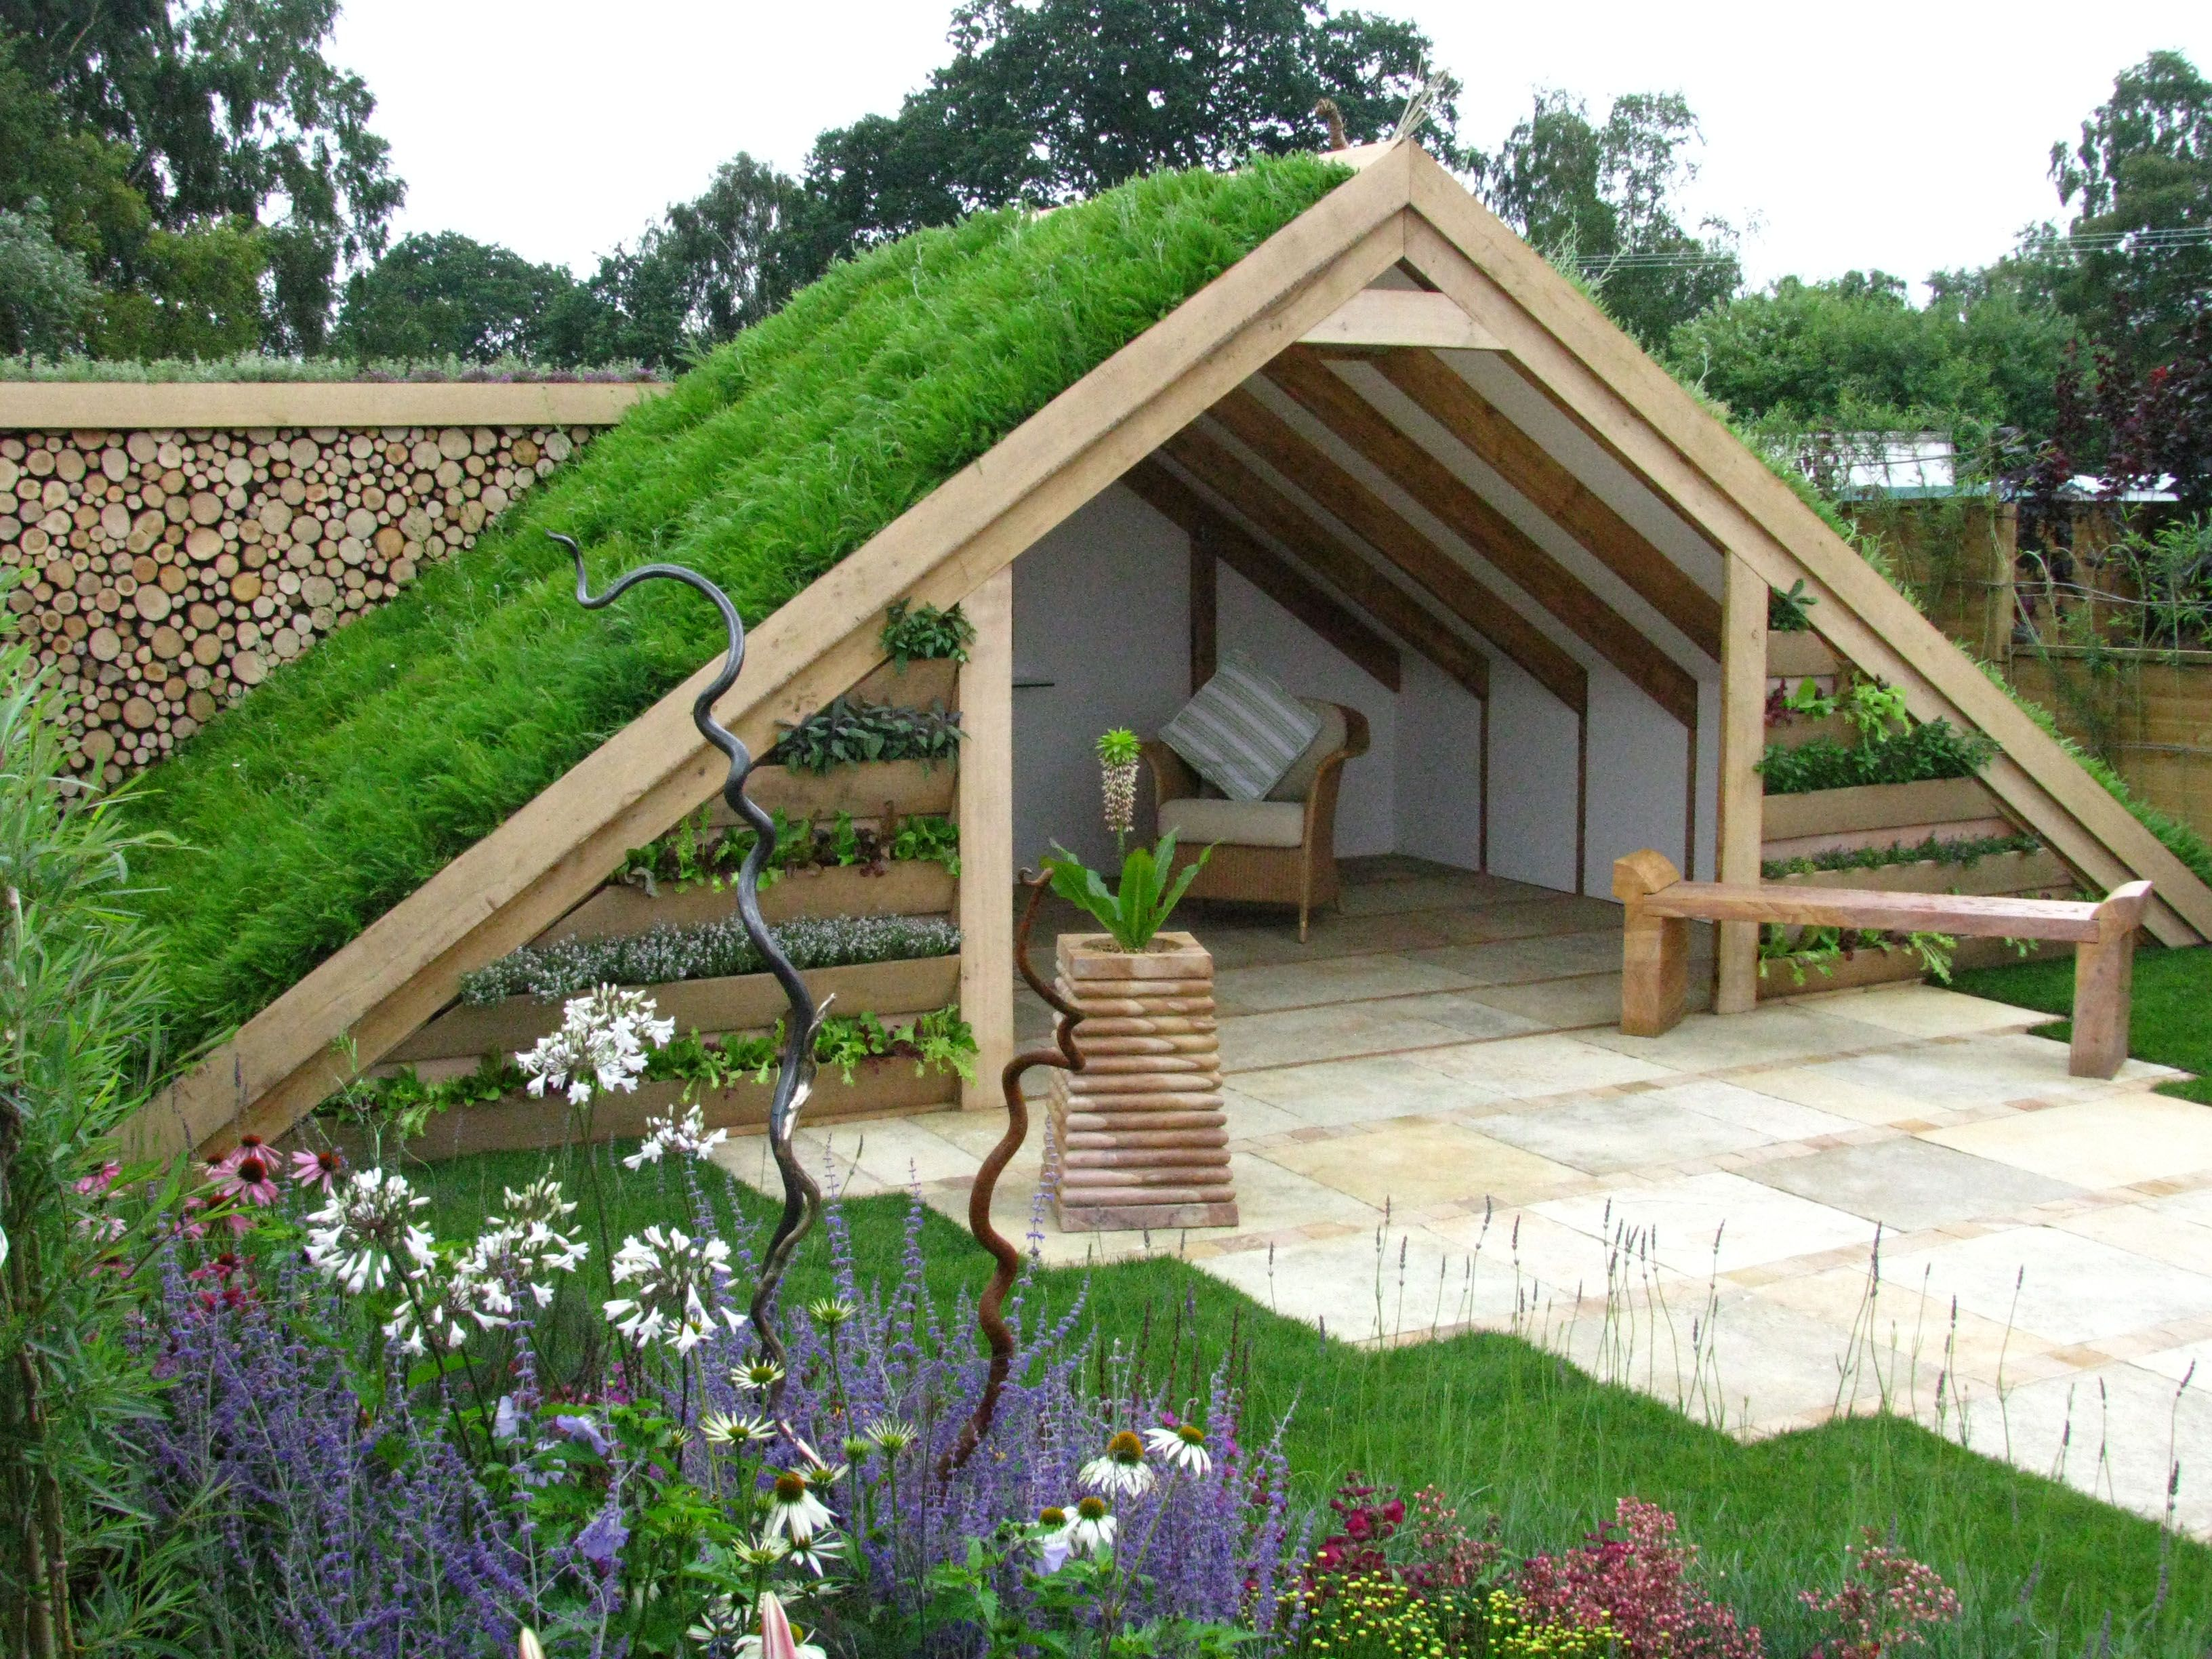 Green Roof Shed At Chasewater, Innovation Centre, Brownhills, Staffordshire Uk